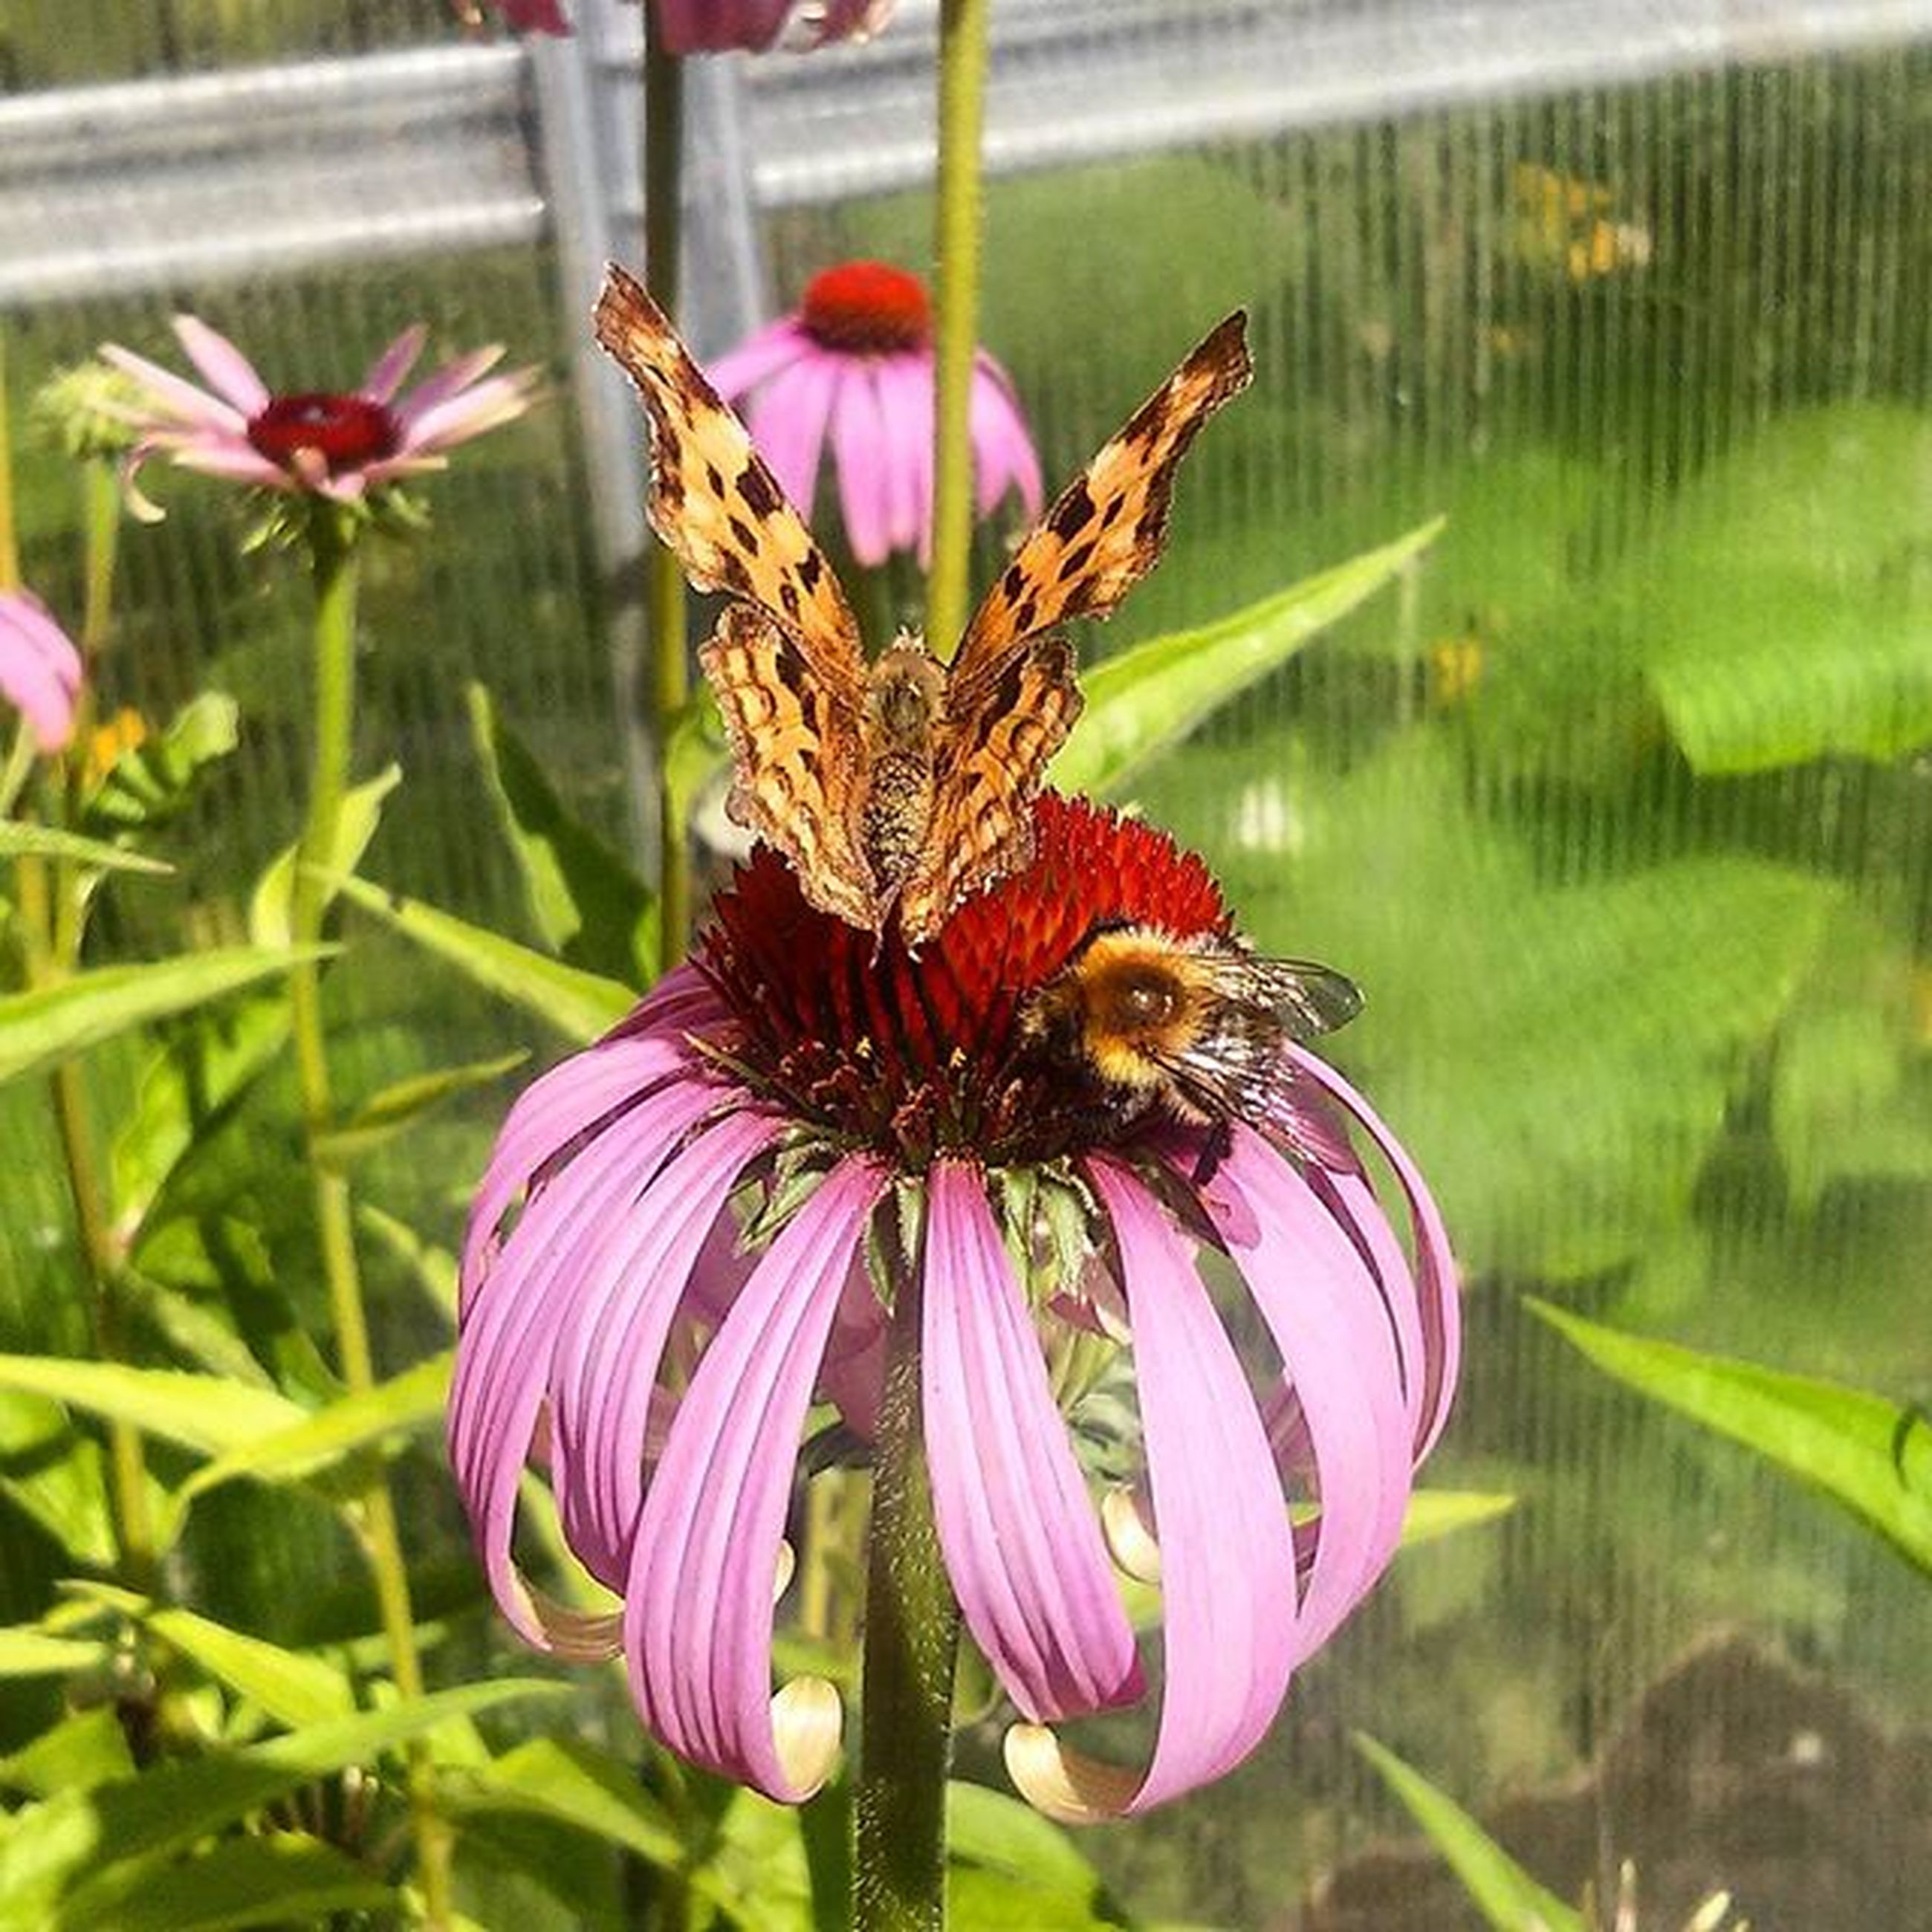 flower, insect, one animal, animal themes, petal, animals in the wild, freshness, fragility, wildlife, flower head, pink color, pollination, beauty in nature, close-up, focus on foreground, growth, nature, plant, blooming, butterfly - insect